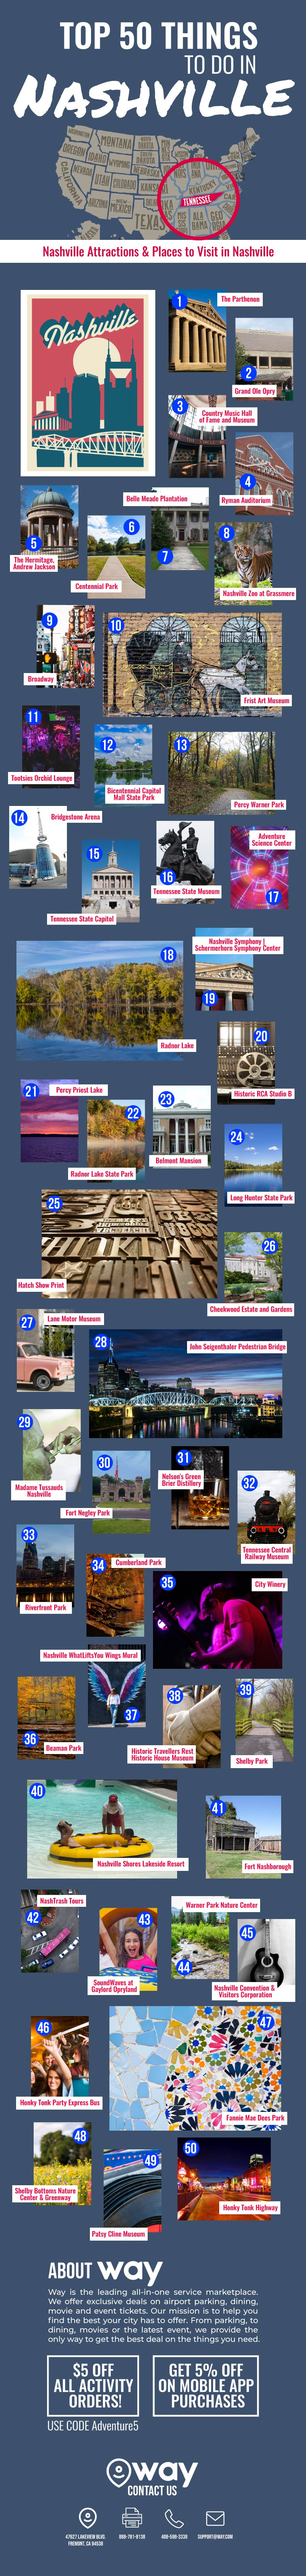 Top 50 Things to Do in Nashville